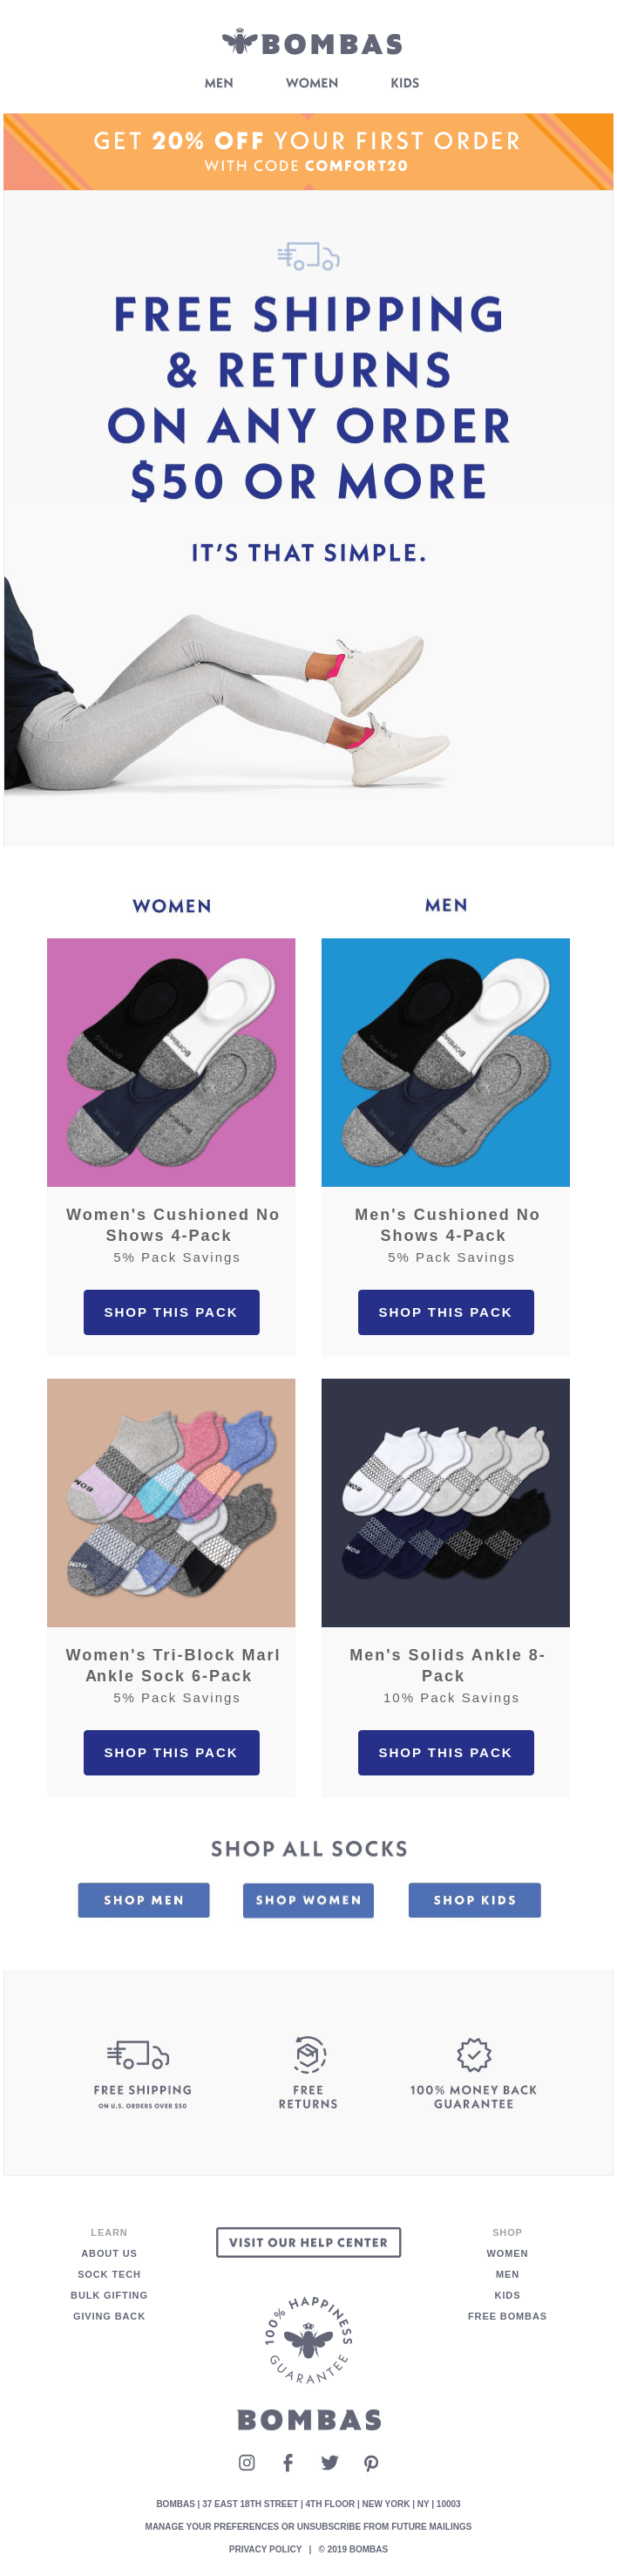 This Is How You Get Free Shipping On Bombas